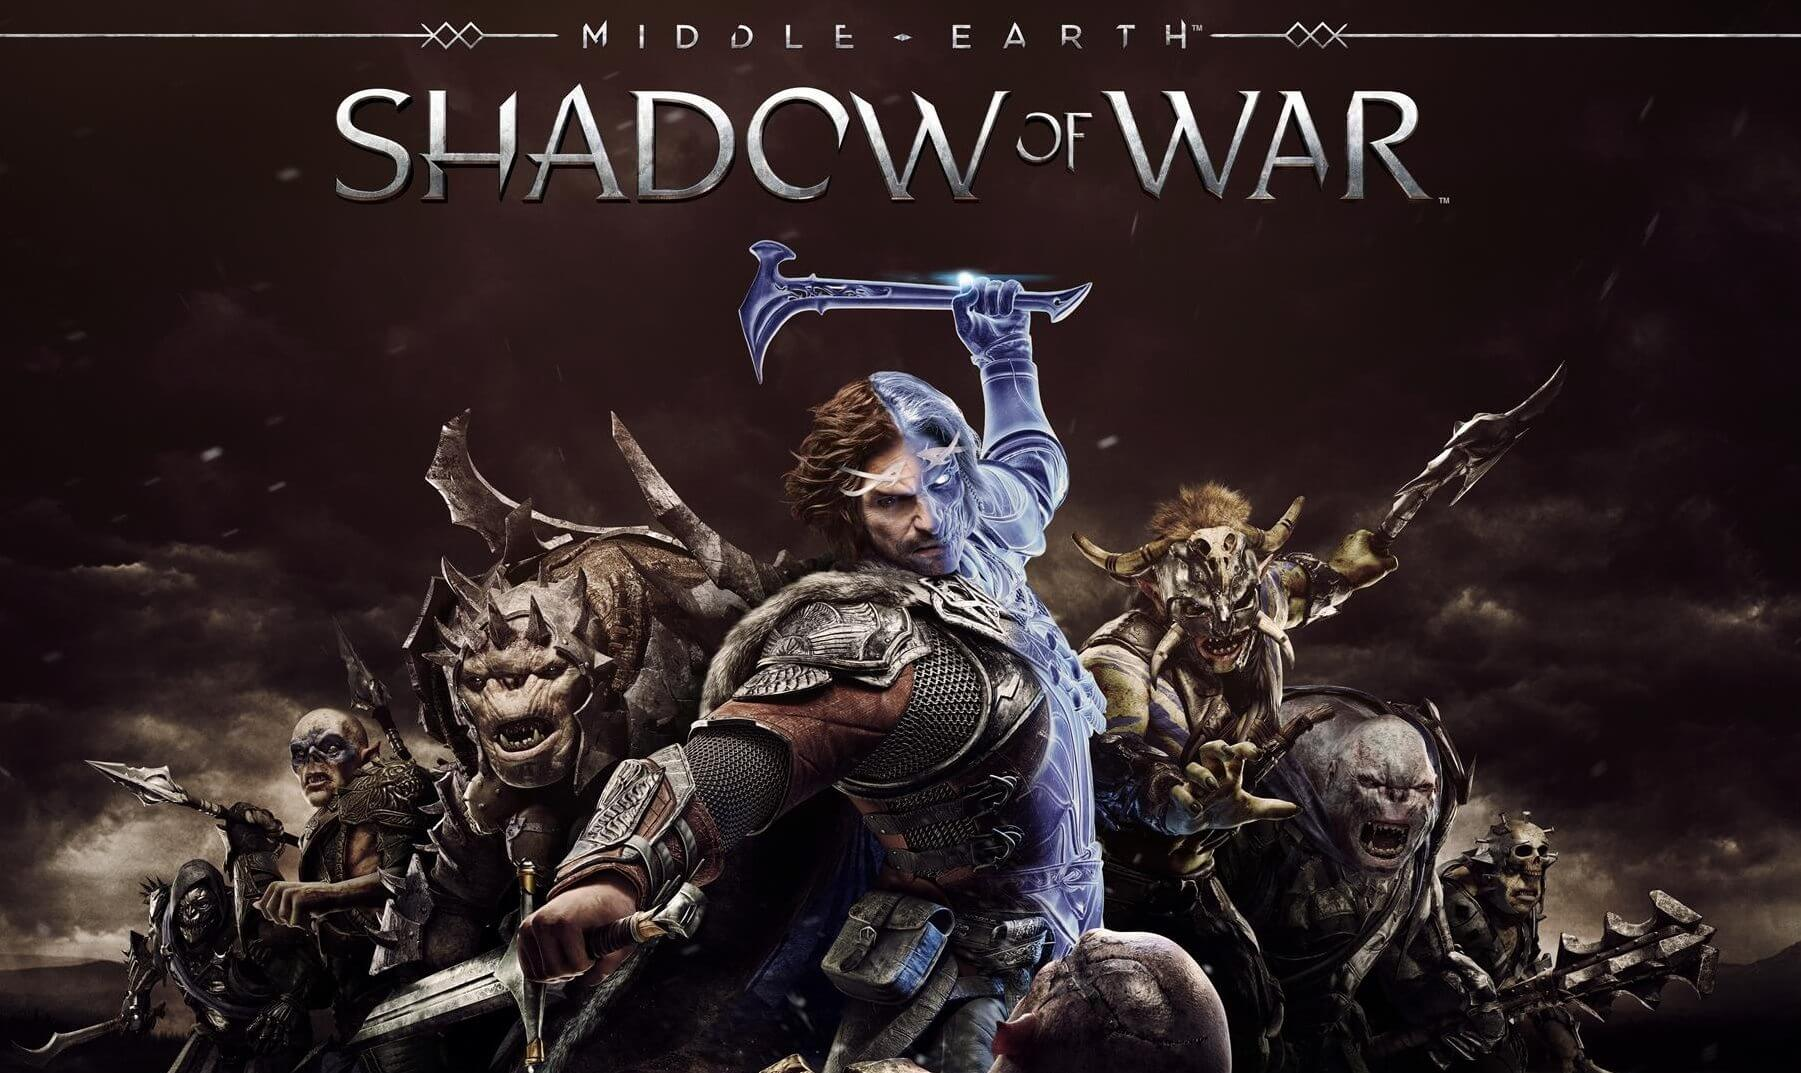 Comic Con 2017: Middle-Earth: Shadow of War revela Laracna em trailer